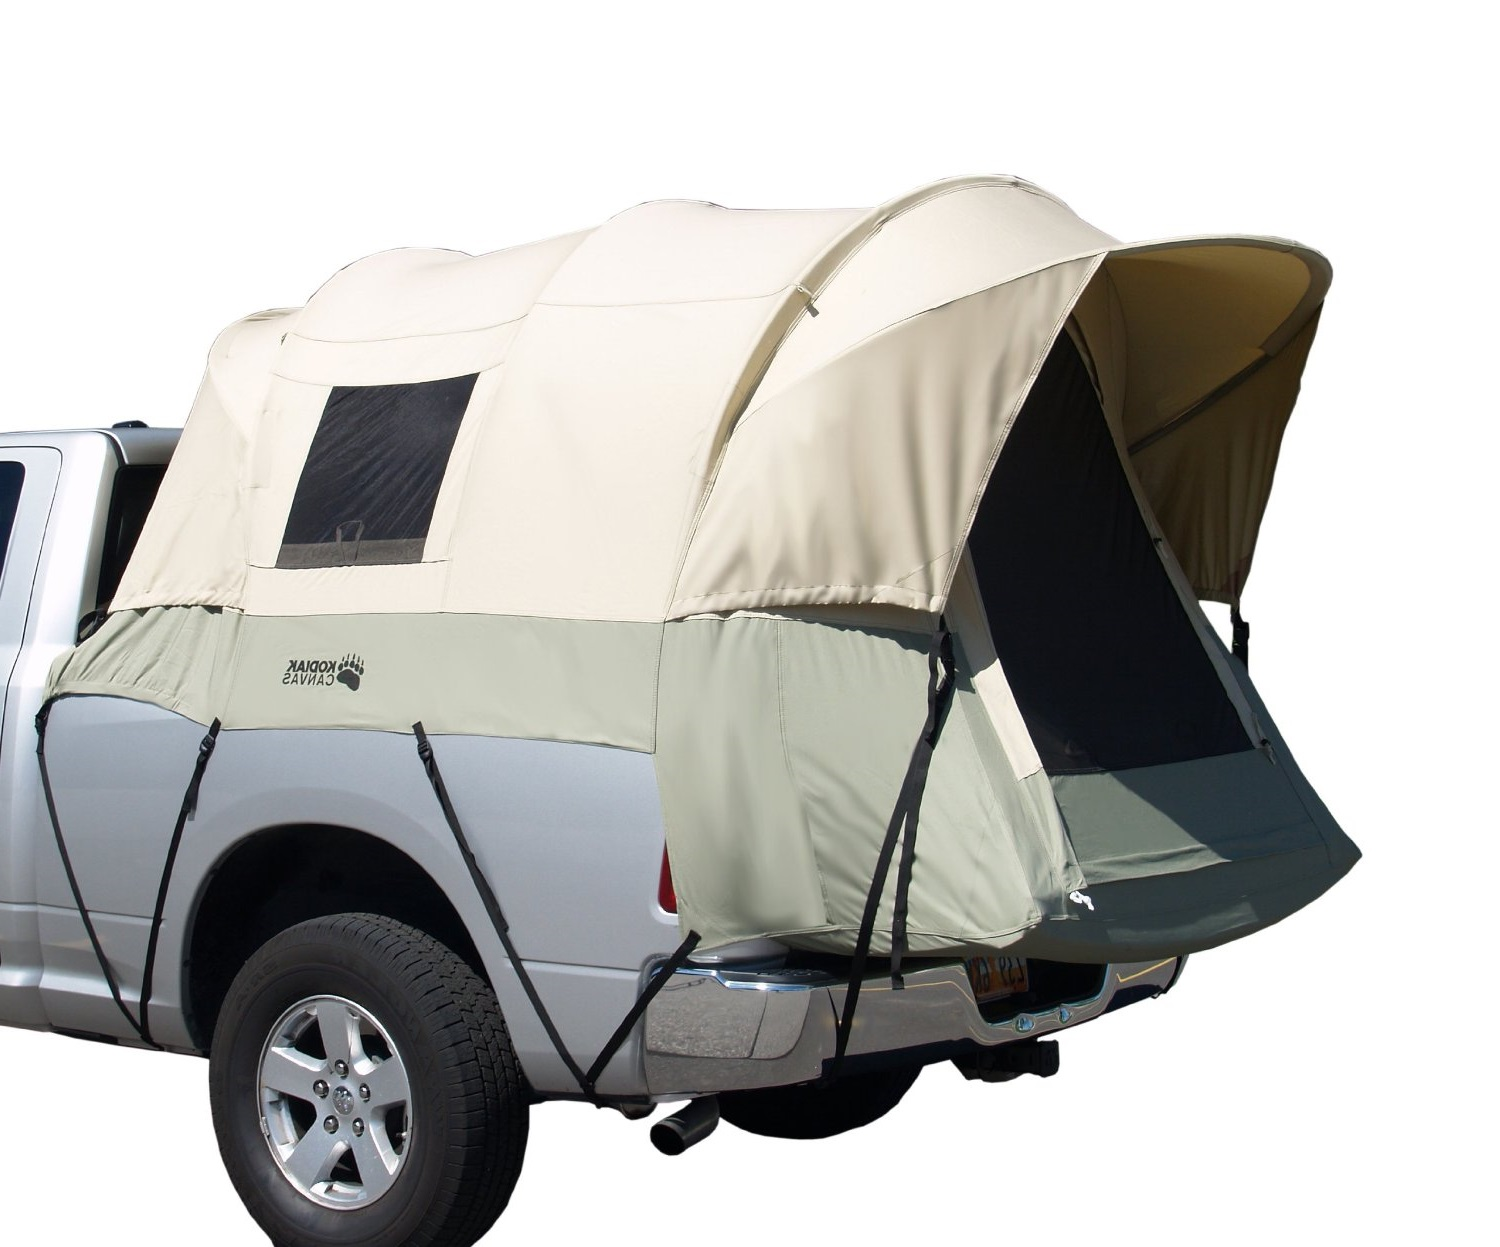 Our Review On Kodiak Canvas 7218 For September 2019